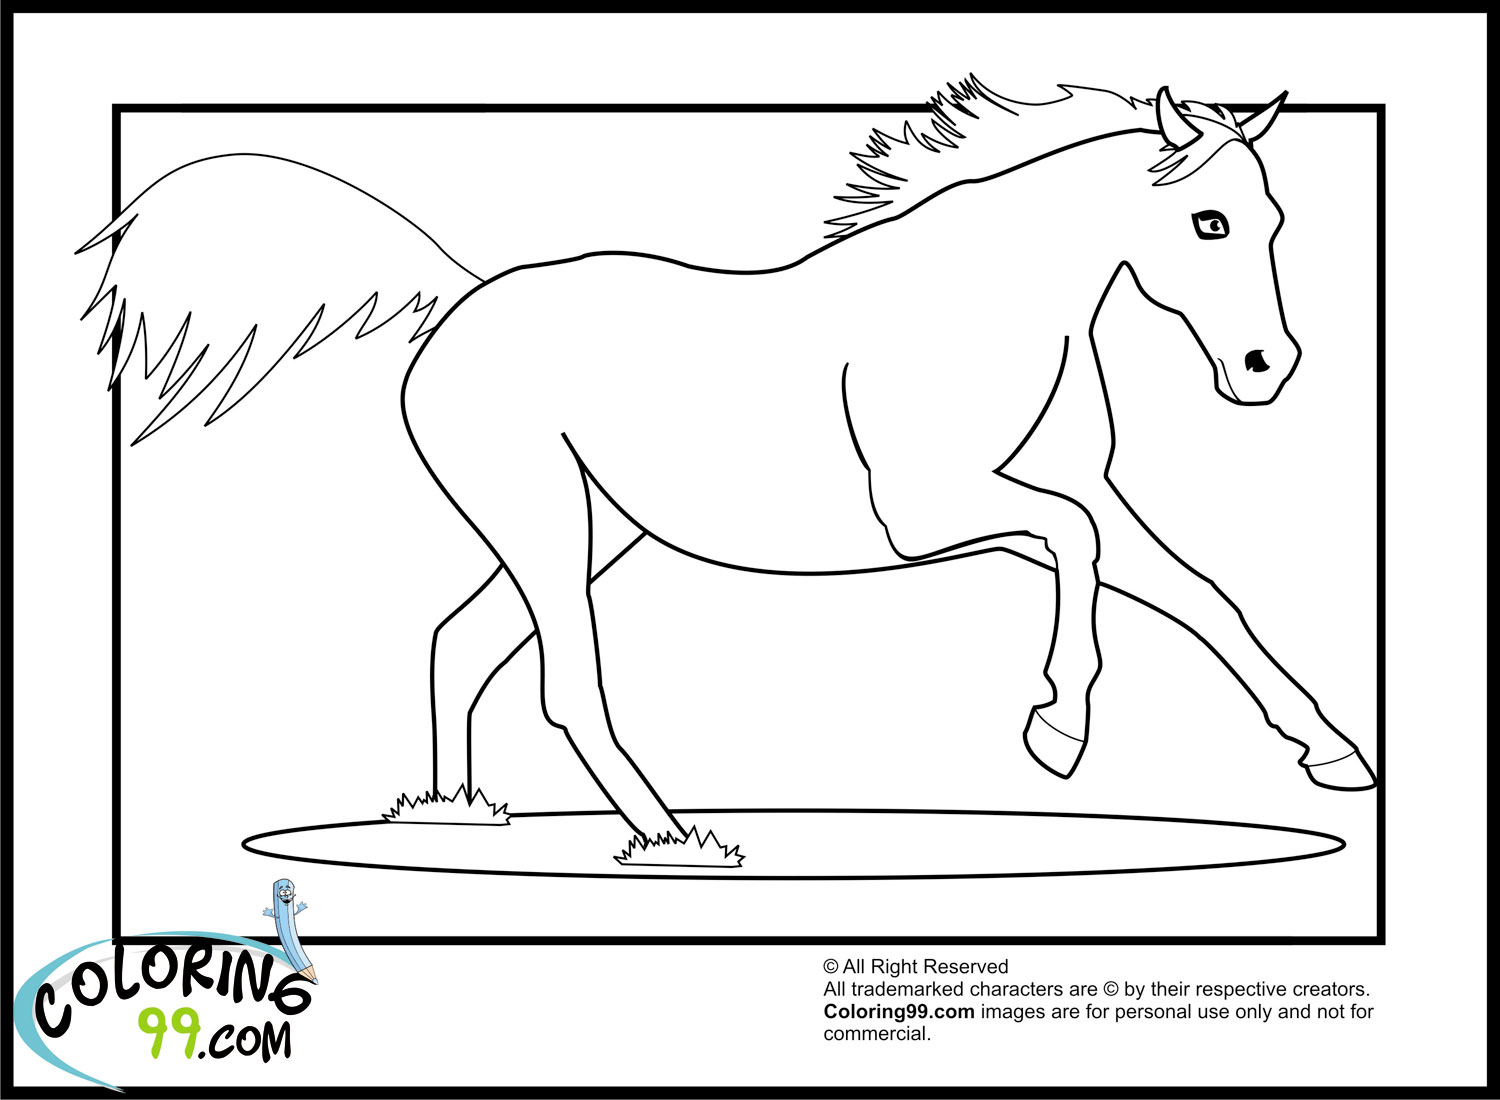 coloring pages horses running - photo #49